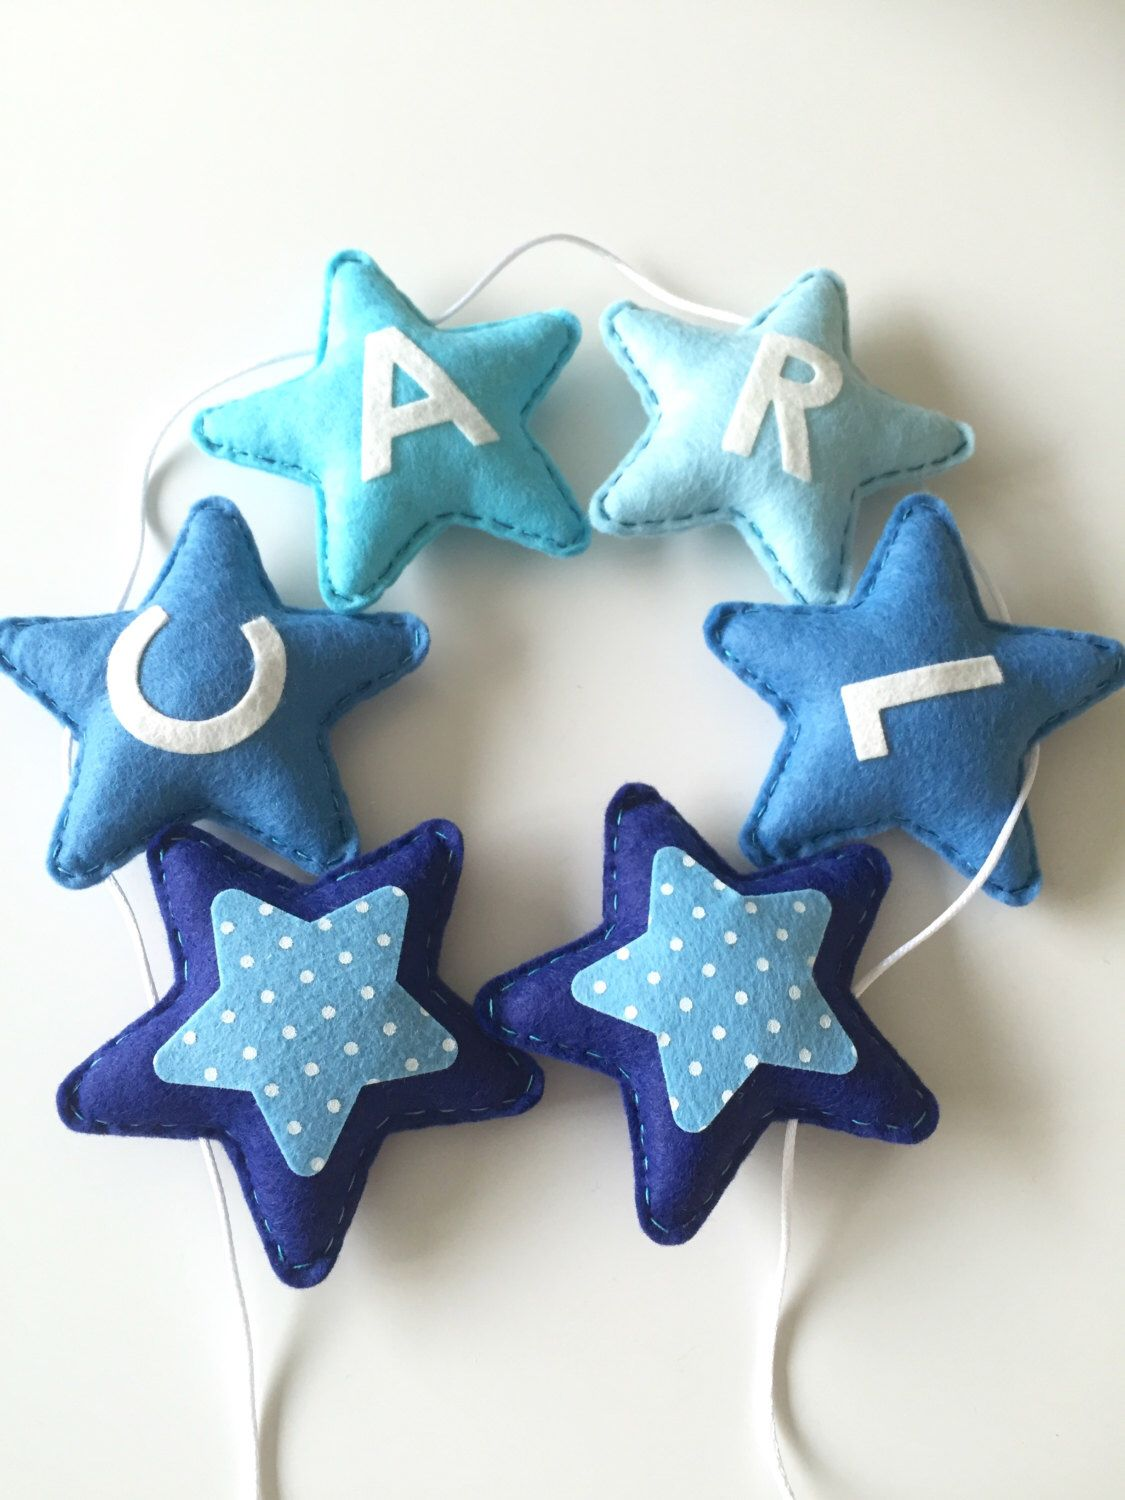 Personalised bunting garland , Blue Stars, baby boy nursery decoration, blue garland, boys name bunting, star garland, blue bunting by xCrazyLittleCraftsx on Etsy https://www.etsy.com/uk/listing/256970085/personalised-bunting-garland-blue-stars